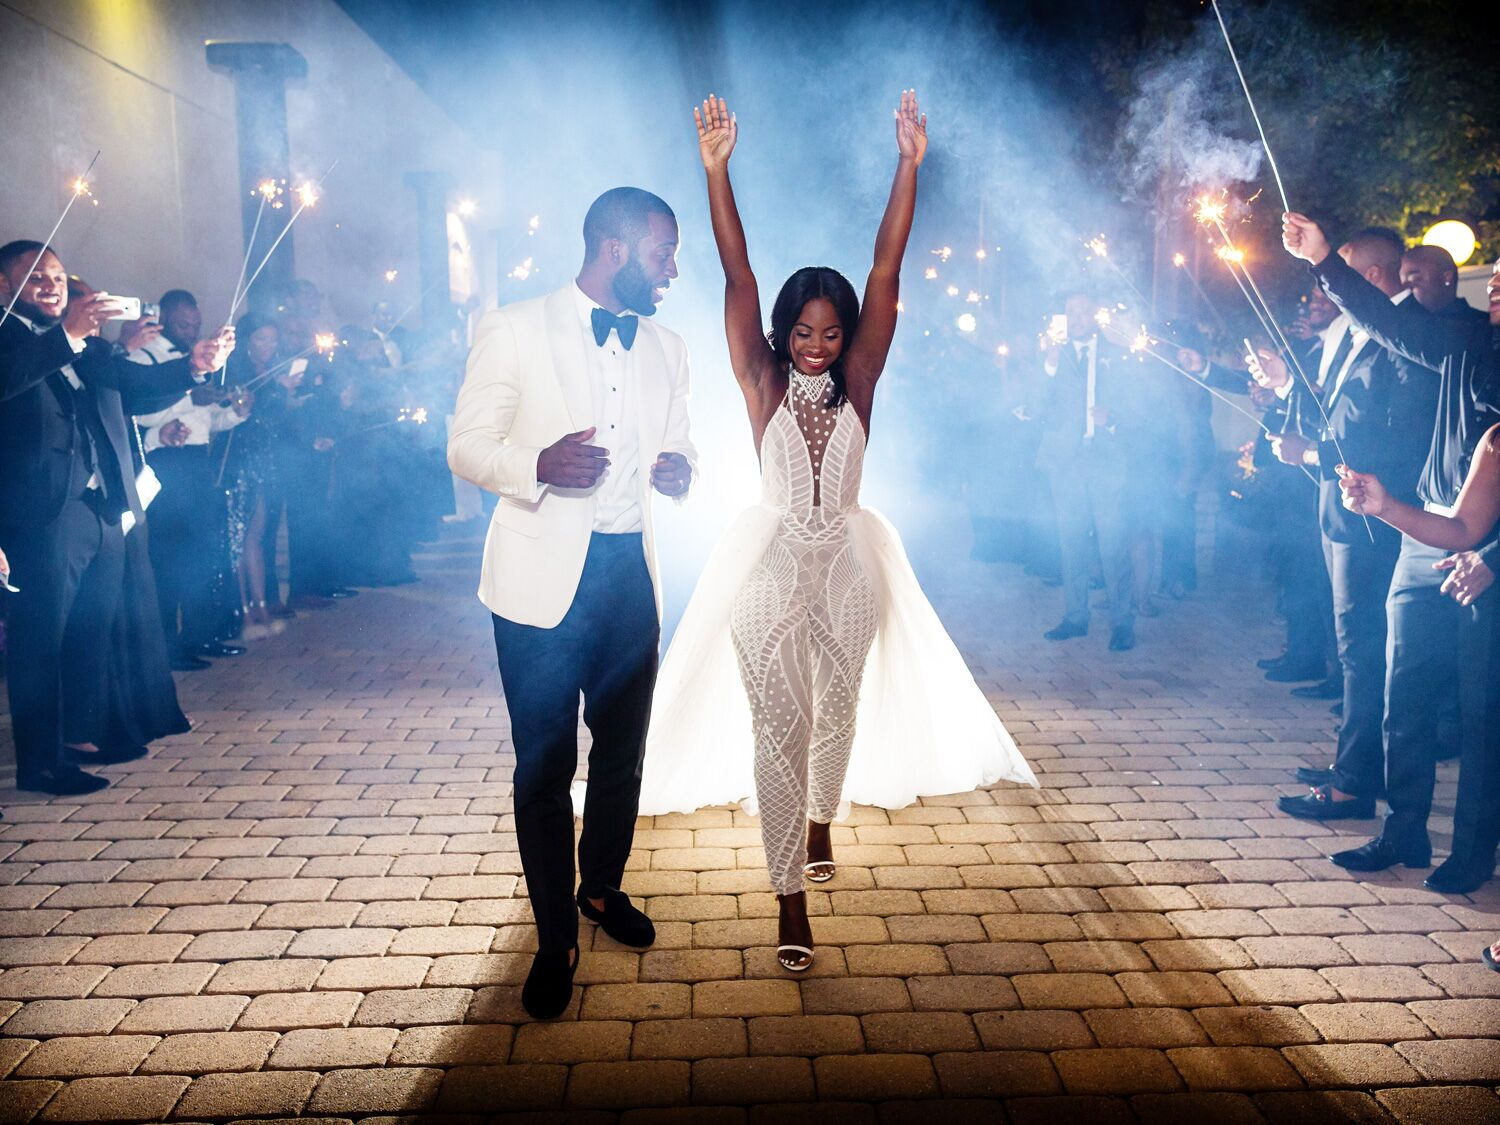 The 8 Best Wedding Exit Songs: Modern, Country and More